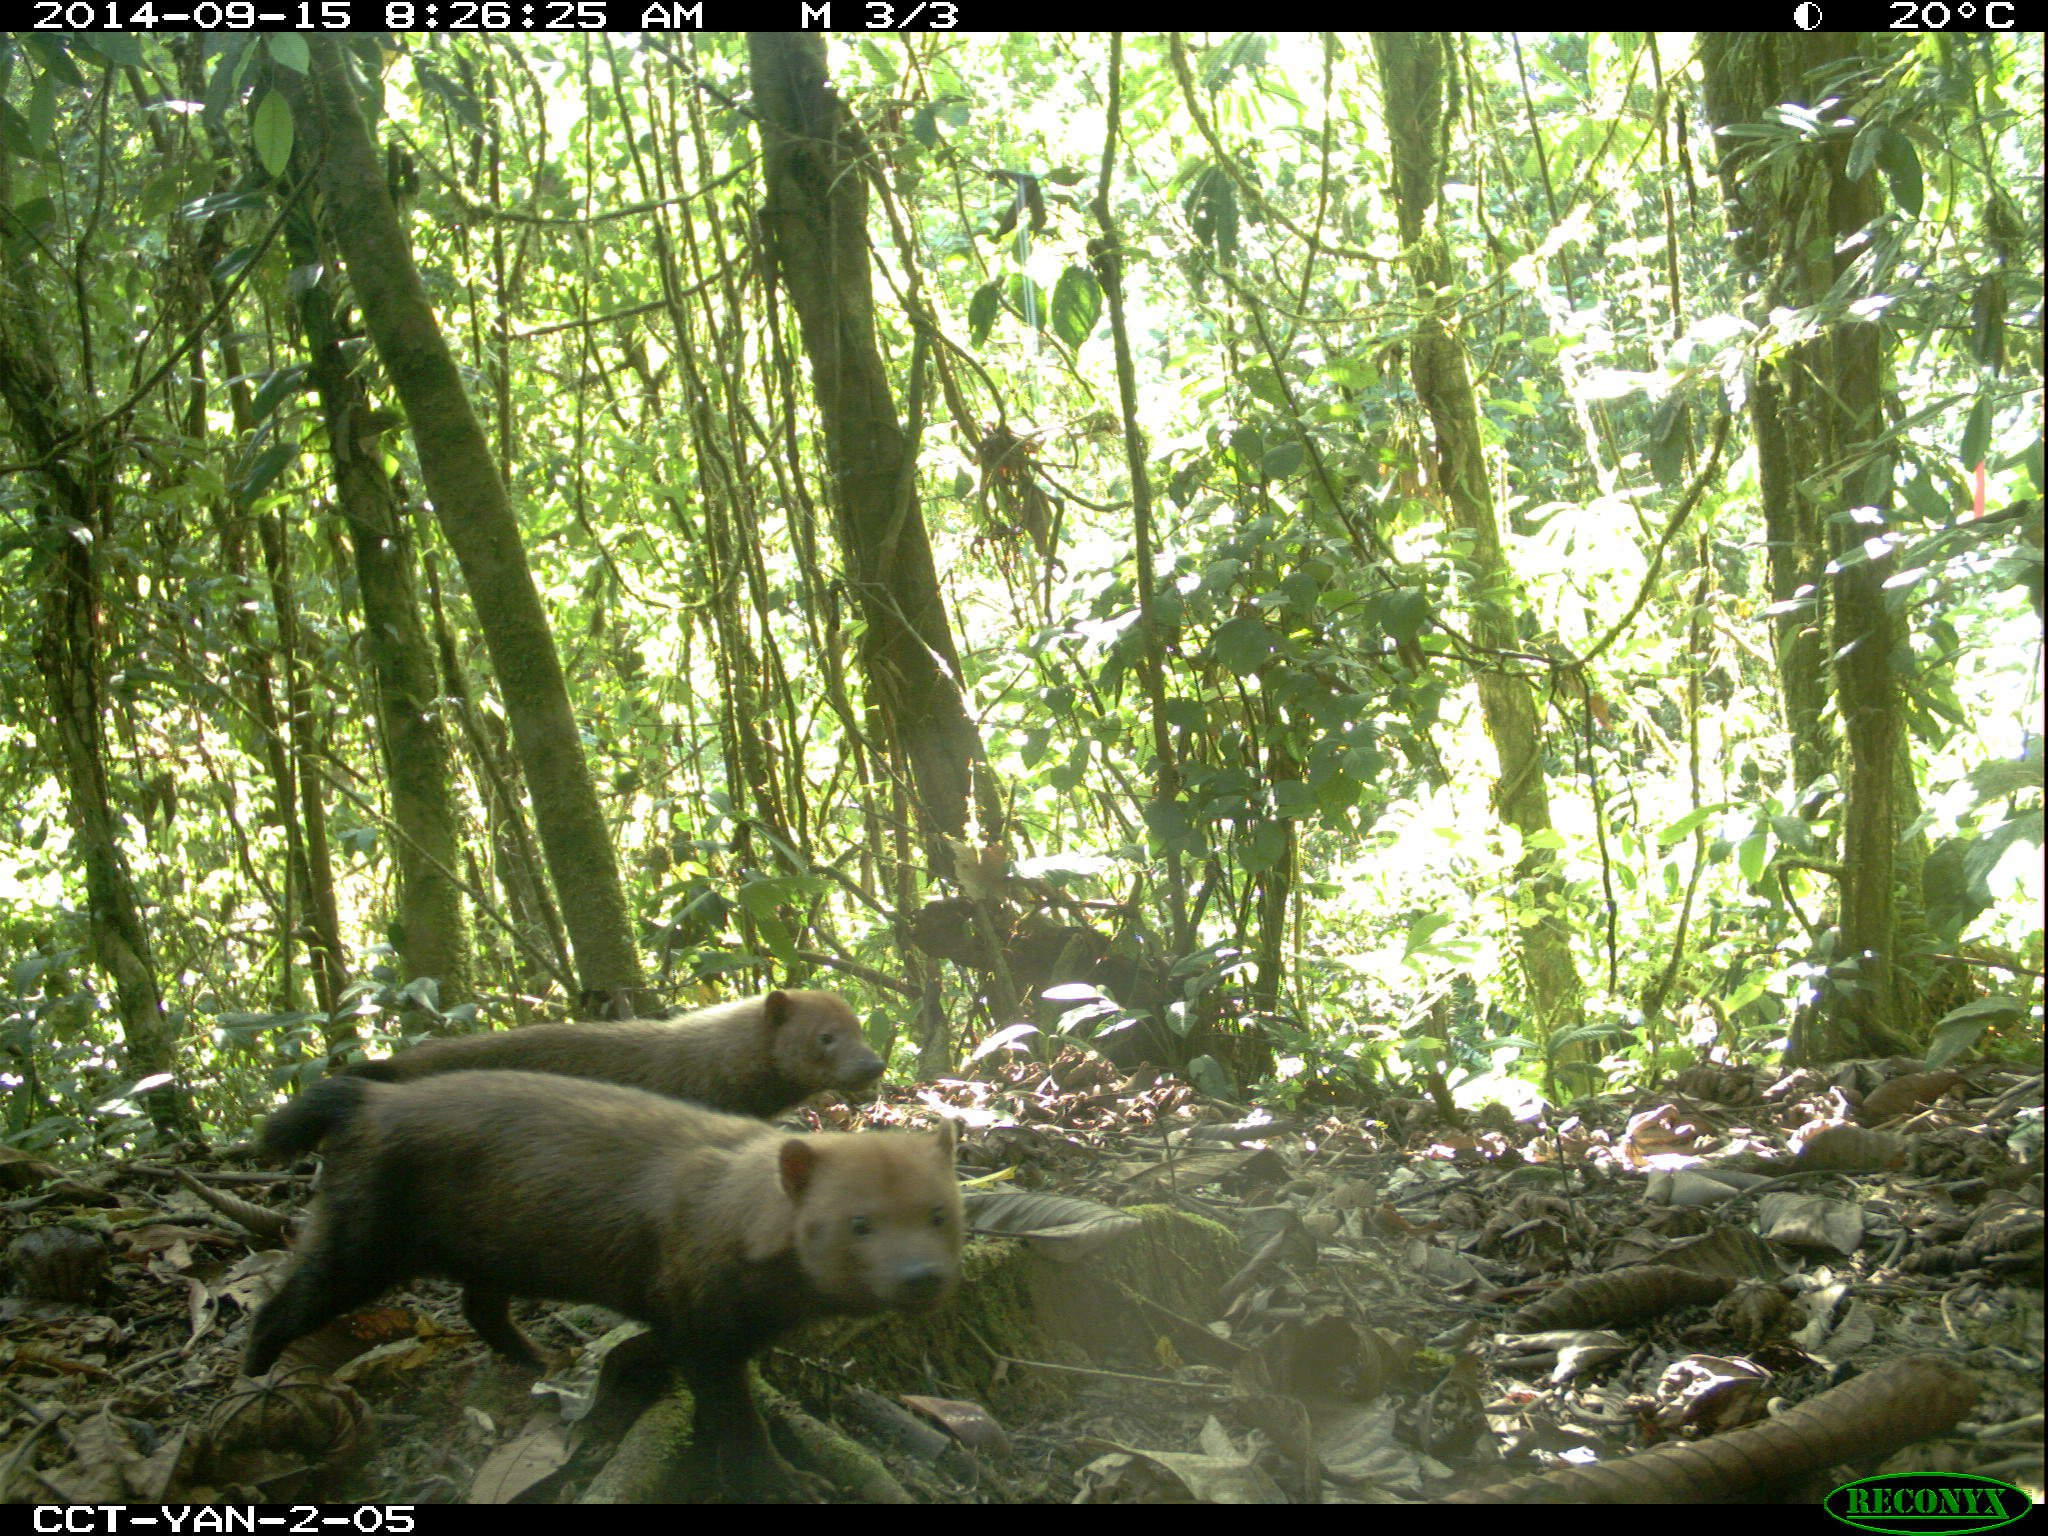 Two rarely-seen bush dogs (Speothos venaticus) are captured for the first time in Yanachaga–Chemillén National Park, Peru, by TEAM camera traps. Image credit: TEAM Network and Missouri Botanical Garden